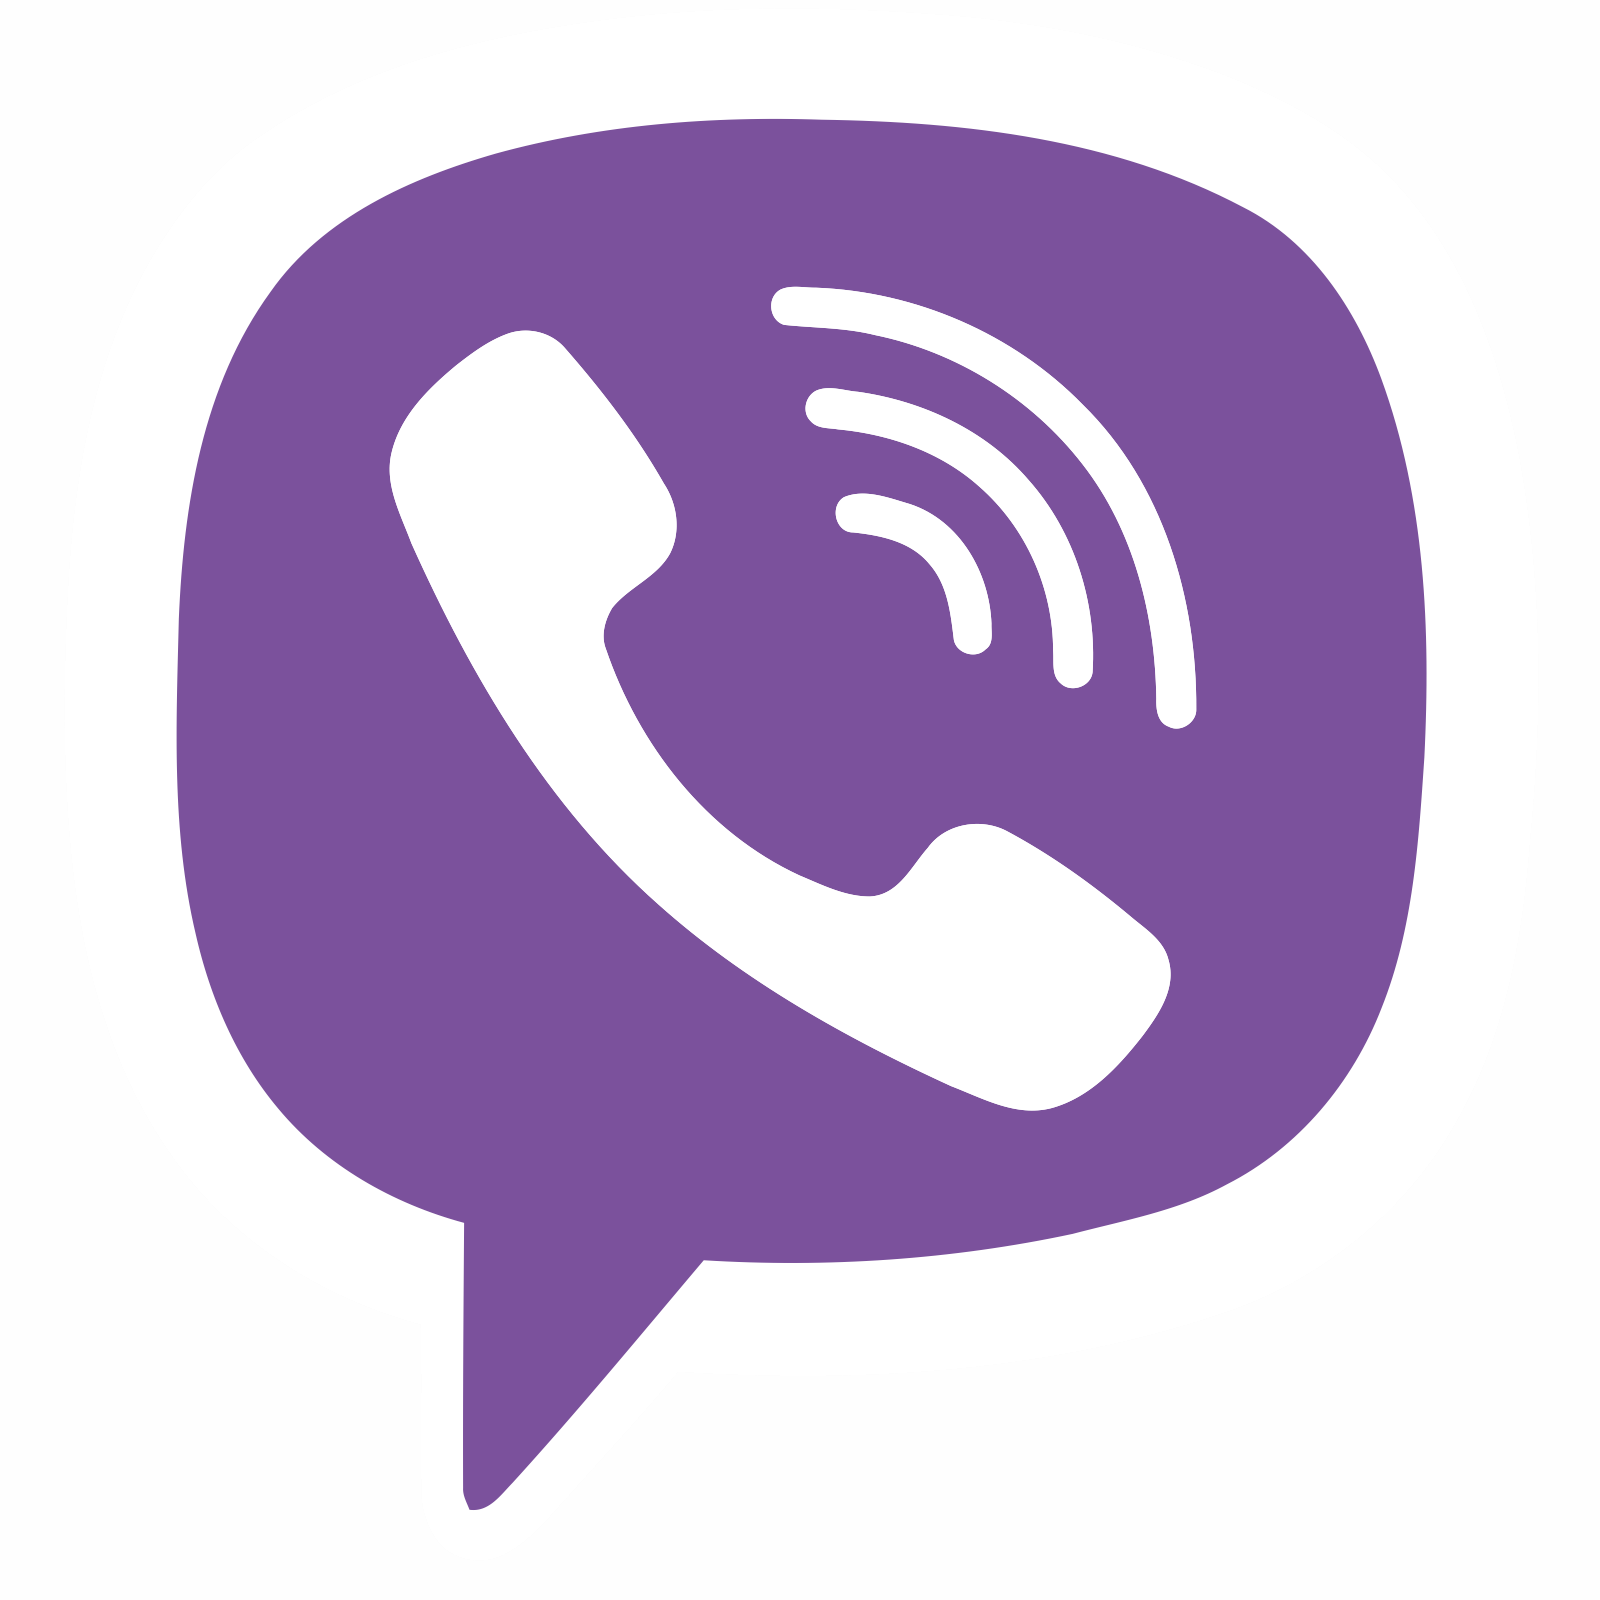 Viber App Sync Contact Issue – Why Some Contacts Do Not Show